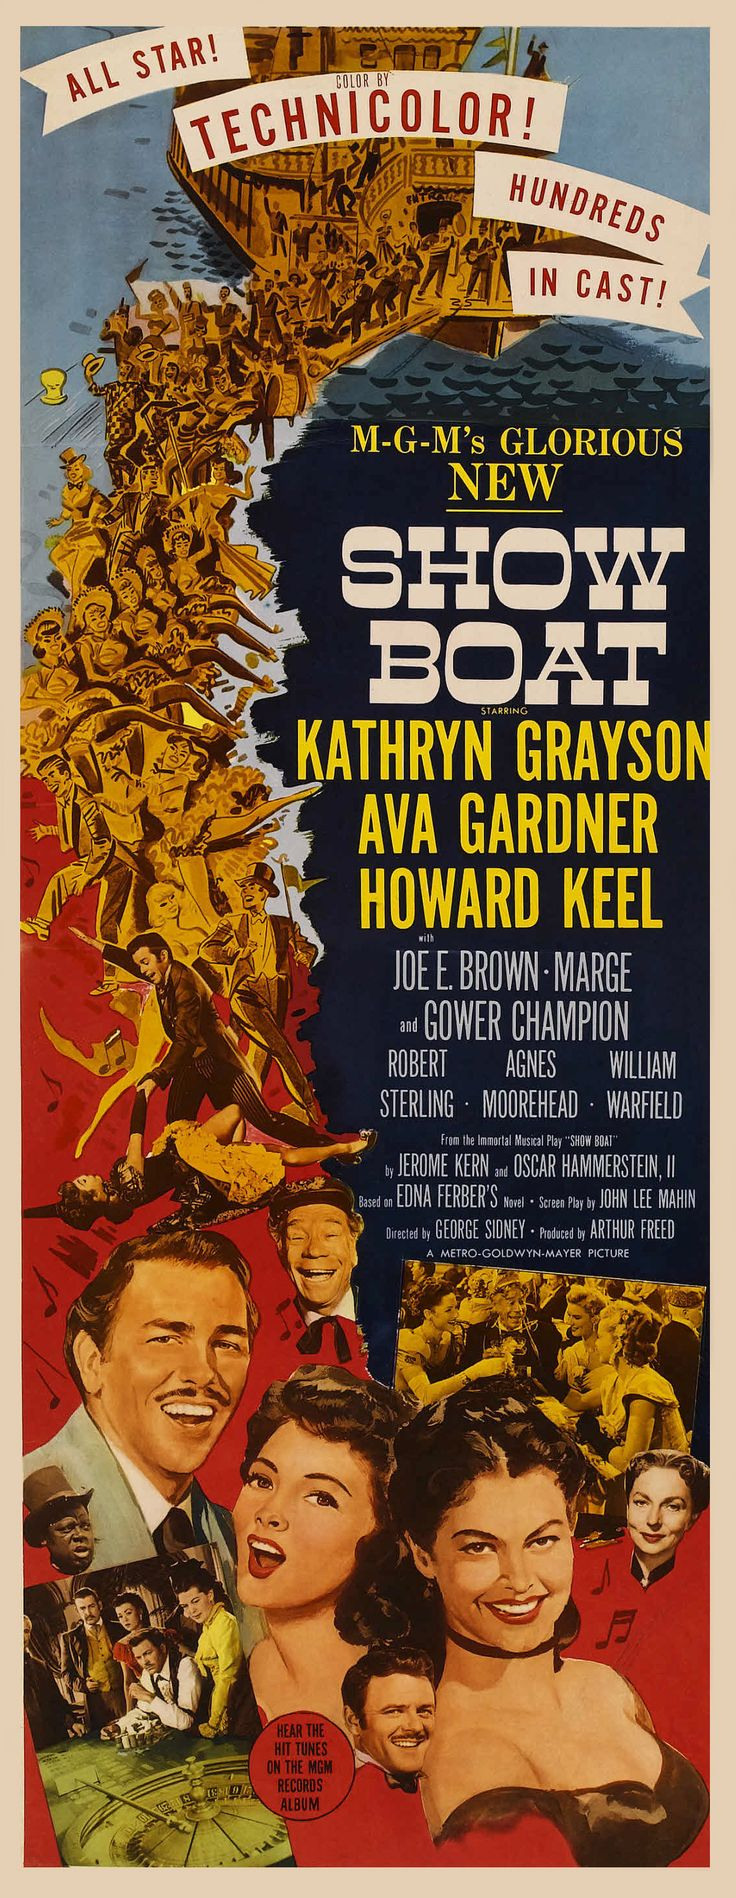 Classic movie poster, Show Boat is a 1951 American musical romantic drama film based on the stage musical of the same name by Jerome Kern (music) and Oscar Hammerstein II (script and lyrics), and the 1926 novel by Edna Ferber. This 1951 film version, by MGM, was adapted for the screen by John Lee Mahin, and was produced by Arthur Freed and directed by George Sidney.